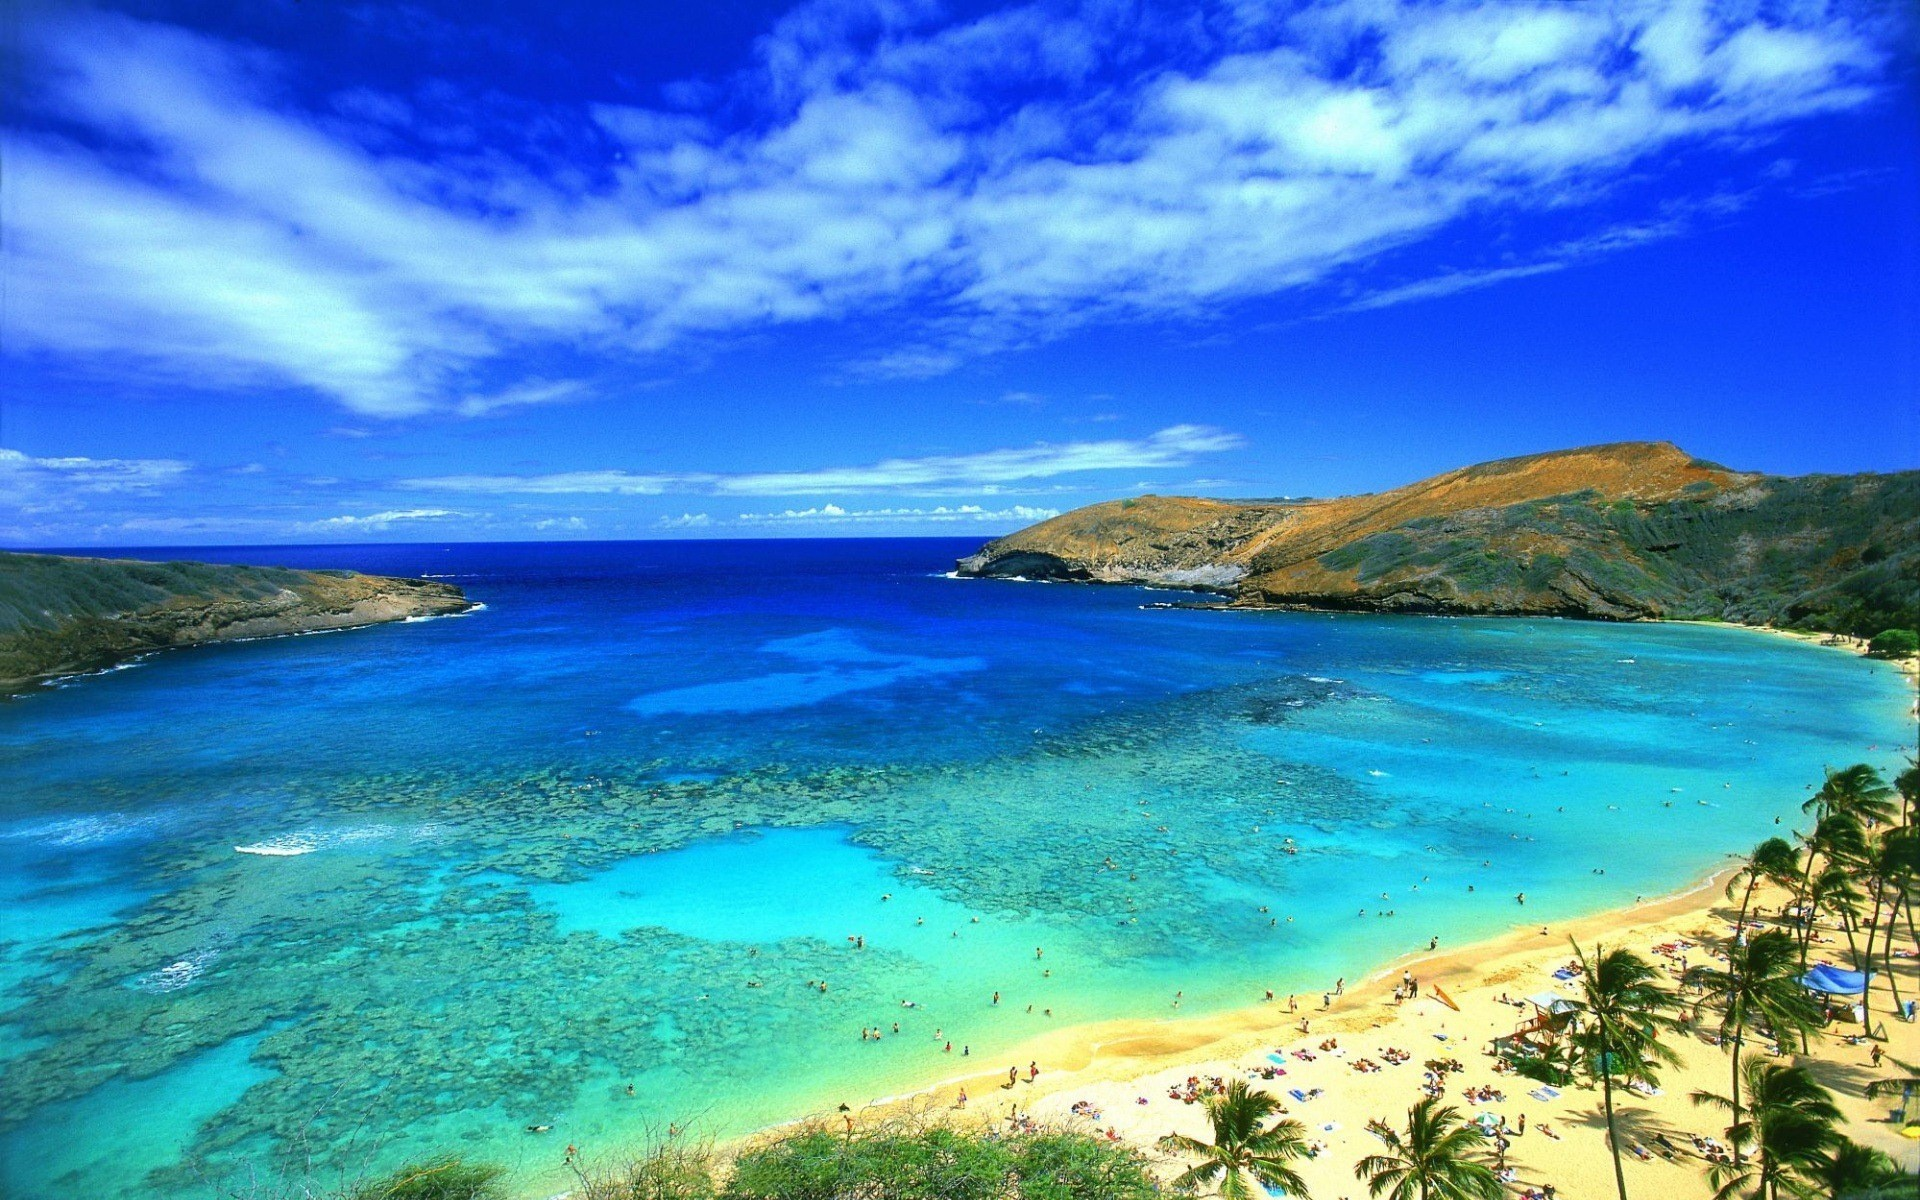 Stunning Hawaii Wallpaper